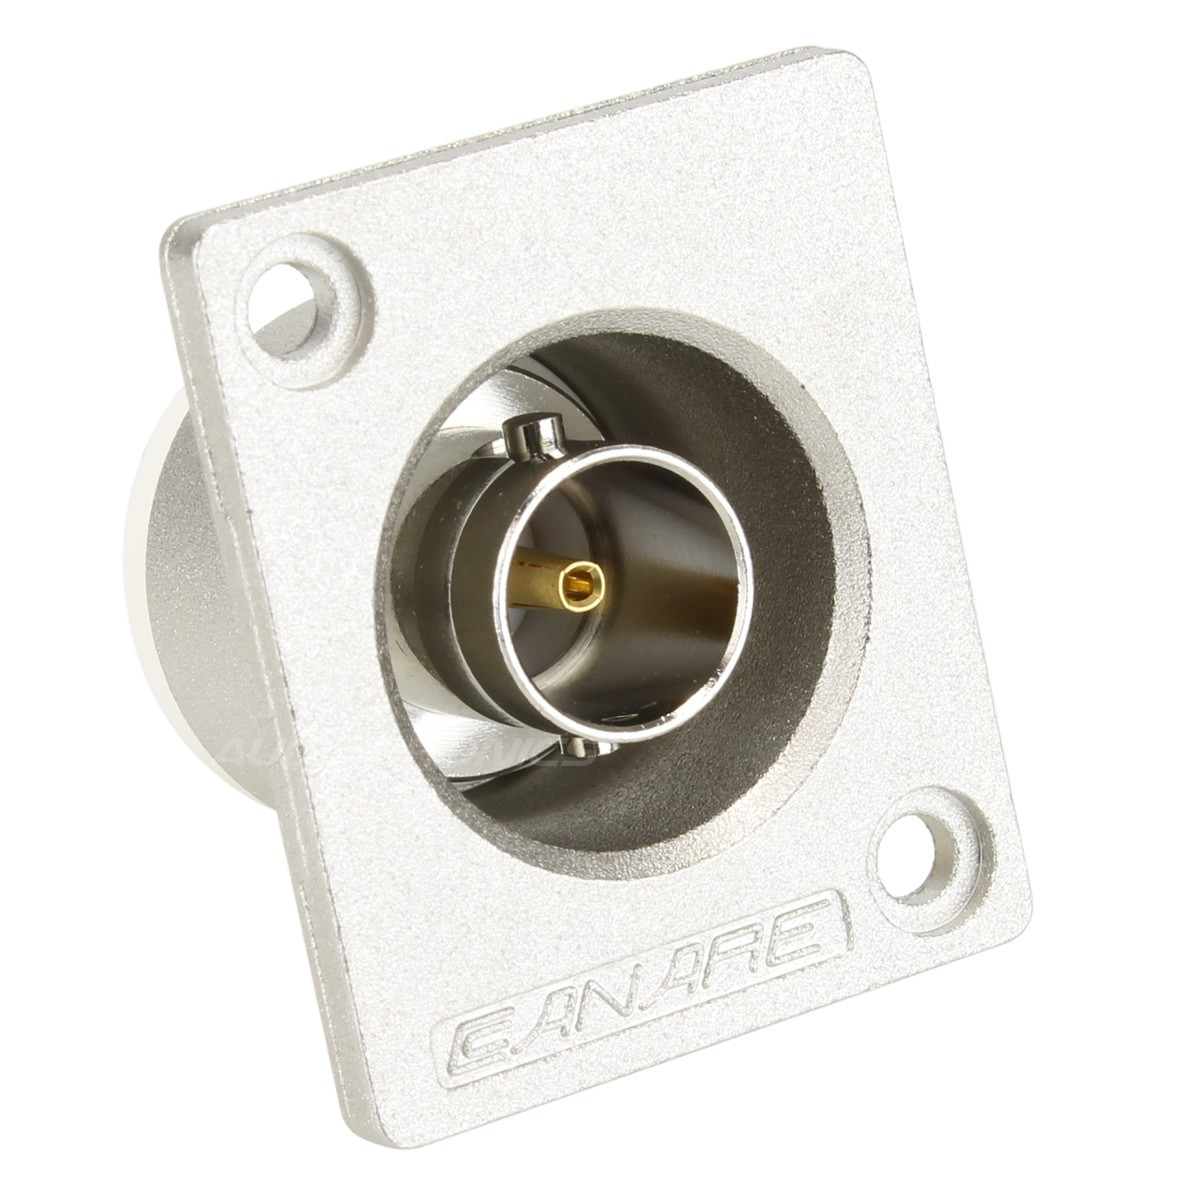 CANARE BCJ-RU High performance BNC inlet 75 Ohm